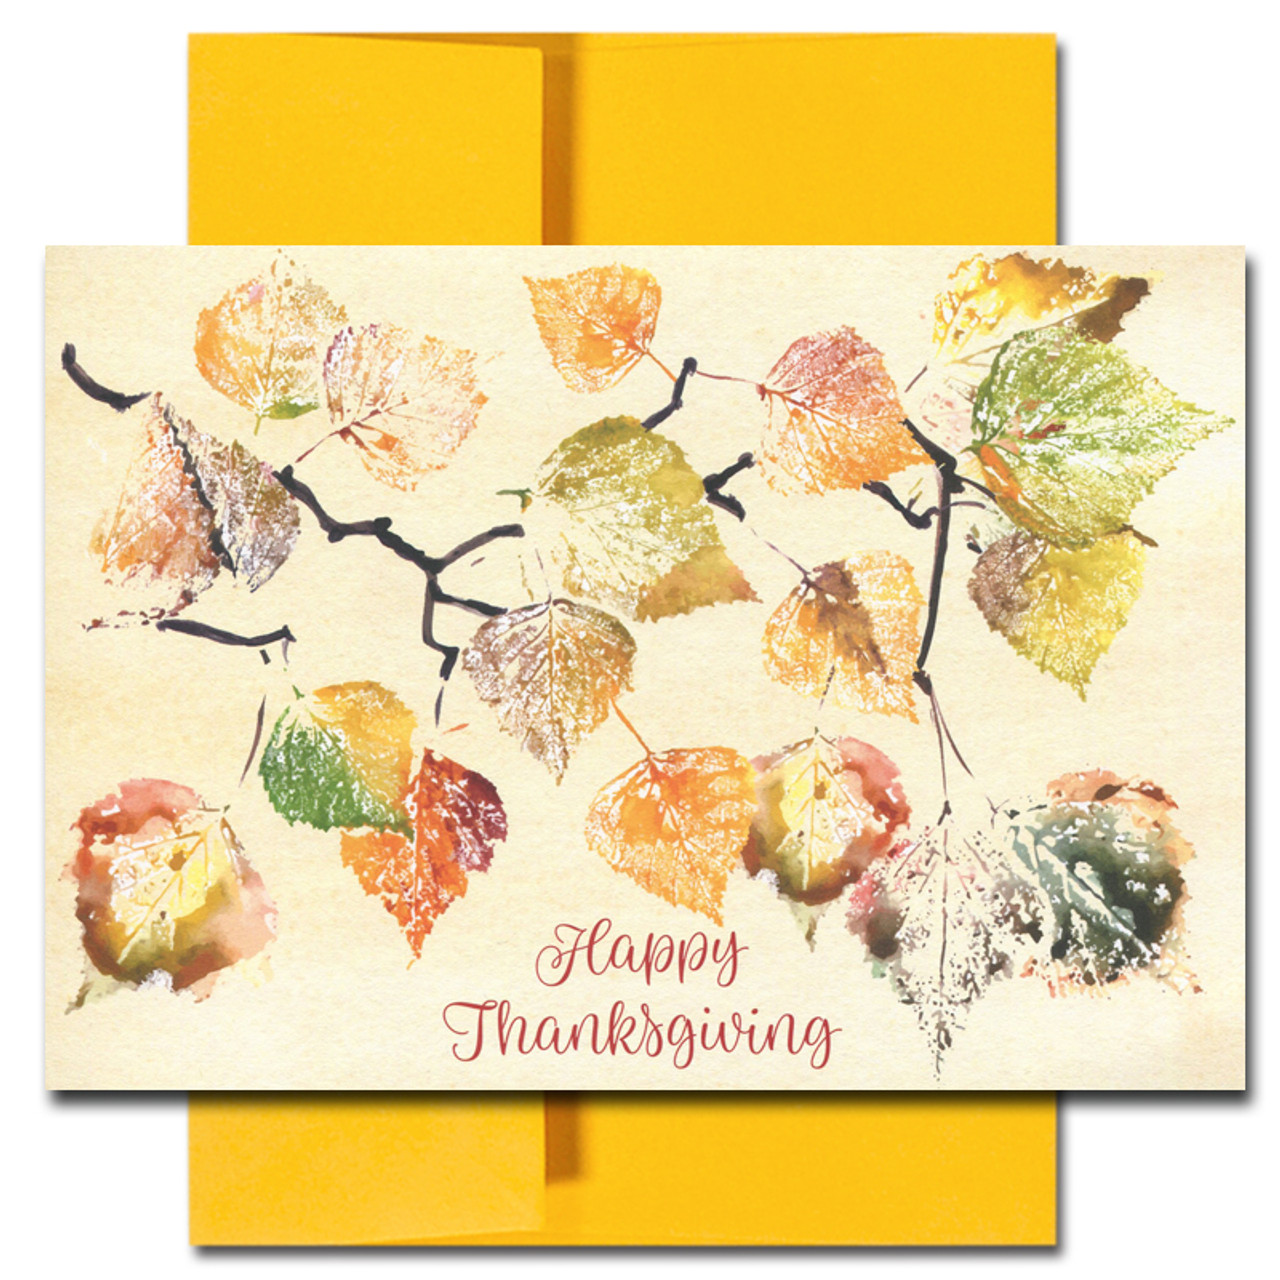 Thanksgiving Card - Painted Leaves has hand painted watercolor leaves in different colors above the words Happy Thanksgiving